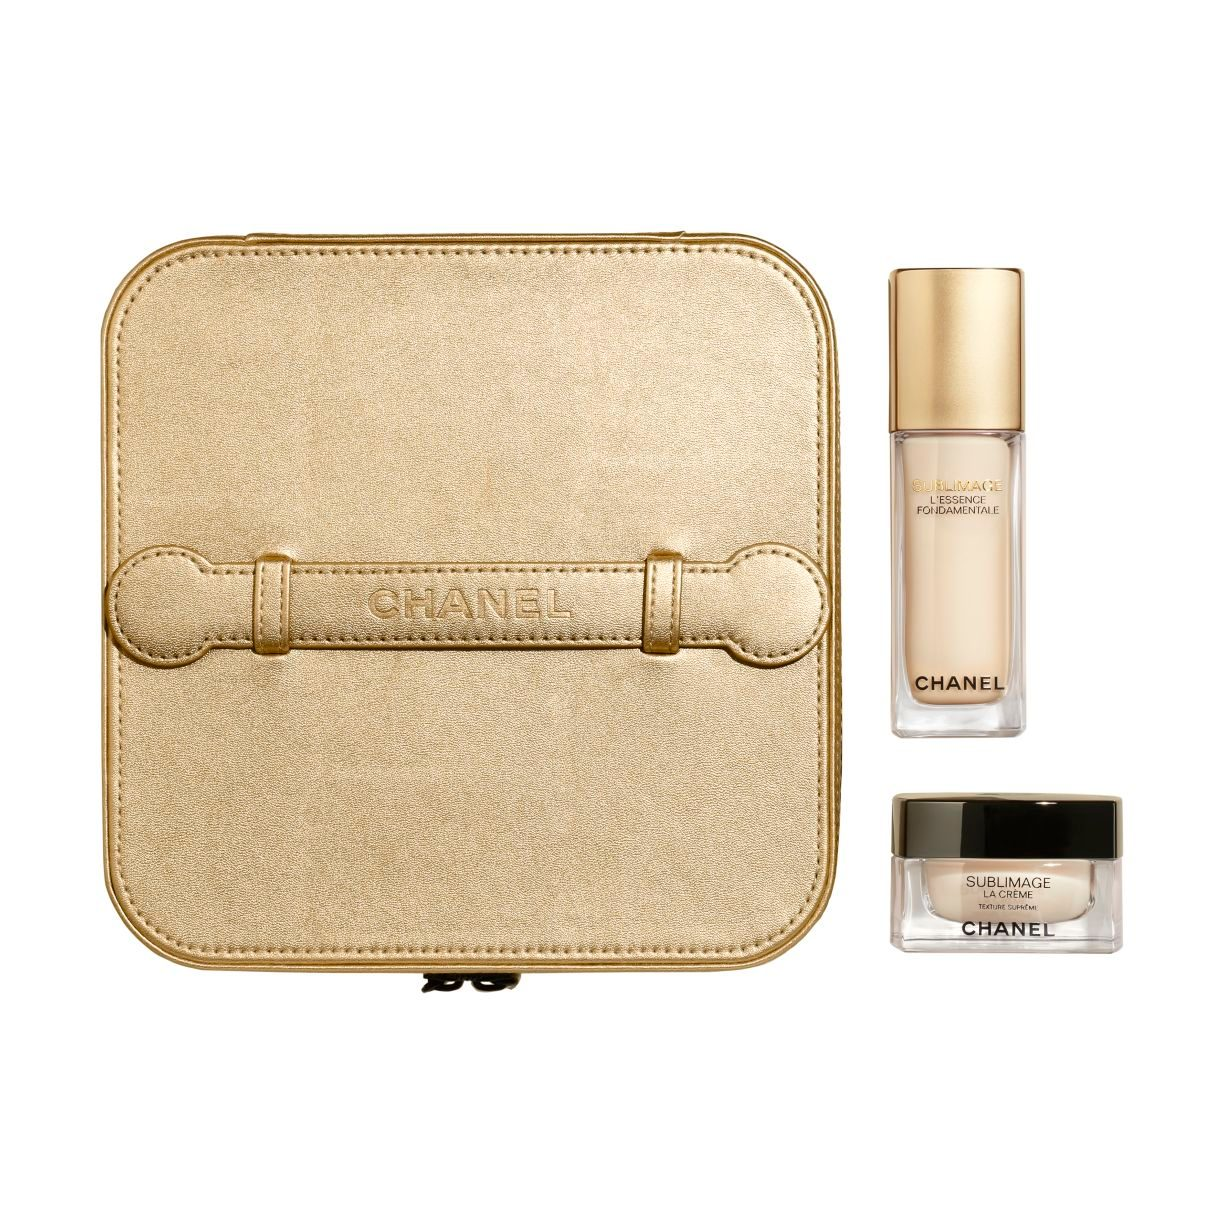 SUBLIMAGE LE COFFRET ULTIMATE REDEFINING CONCENTRATE - CREAM